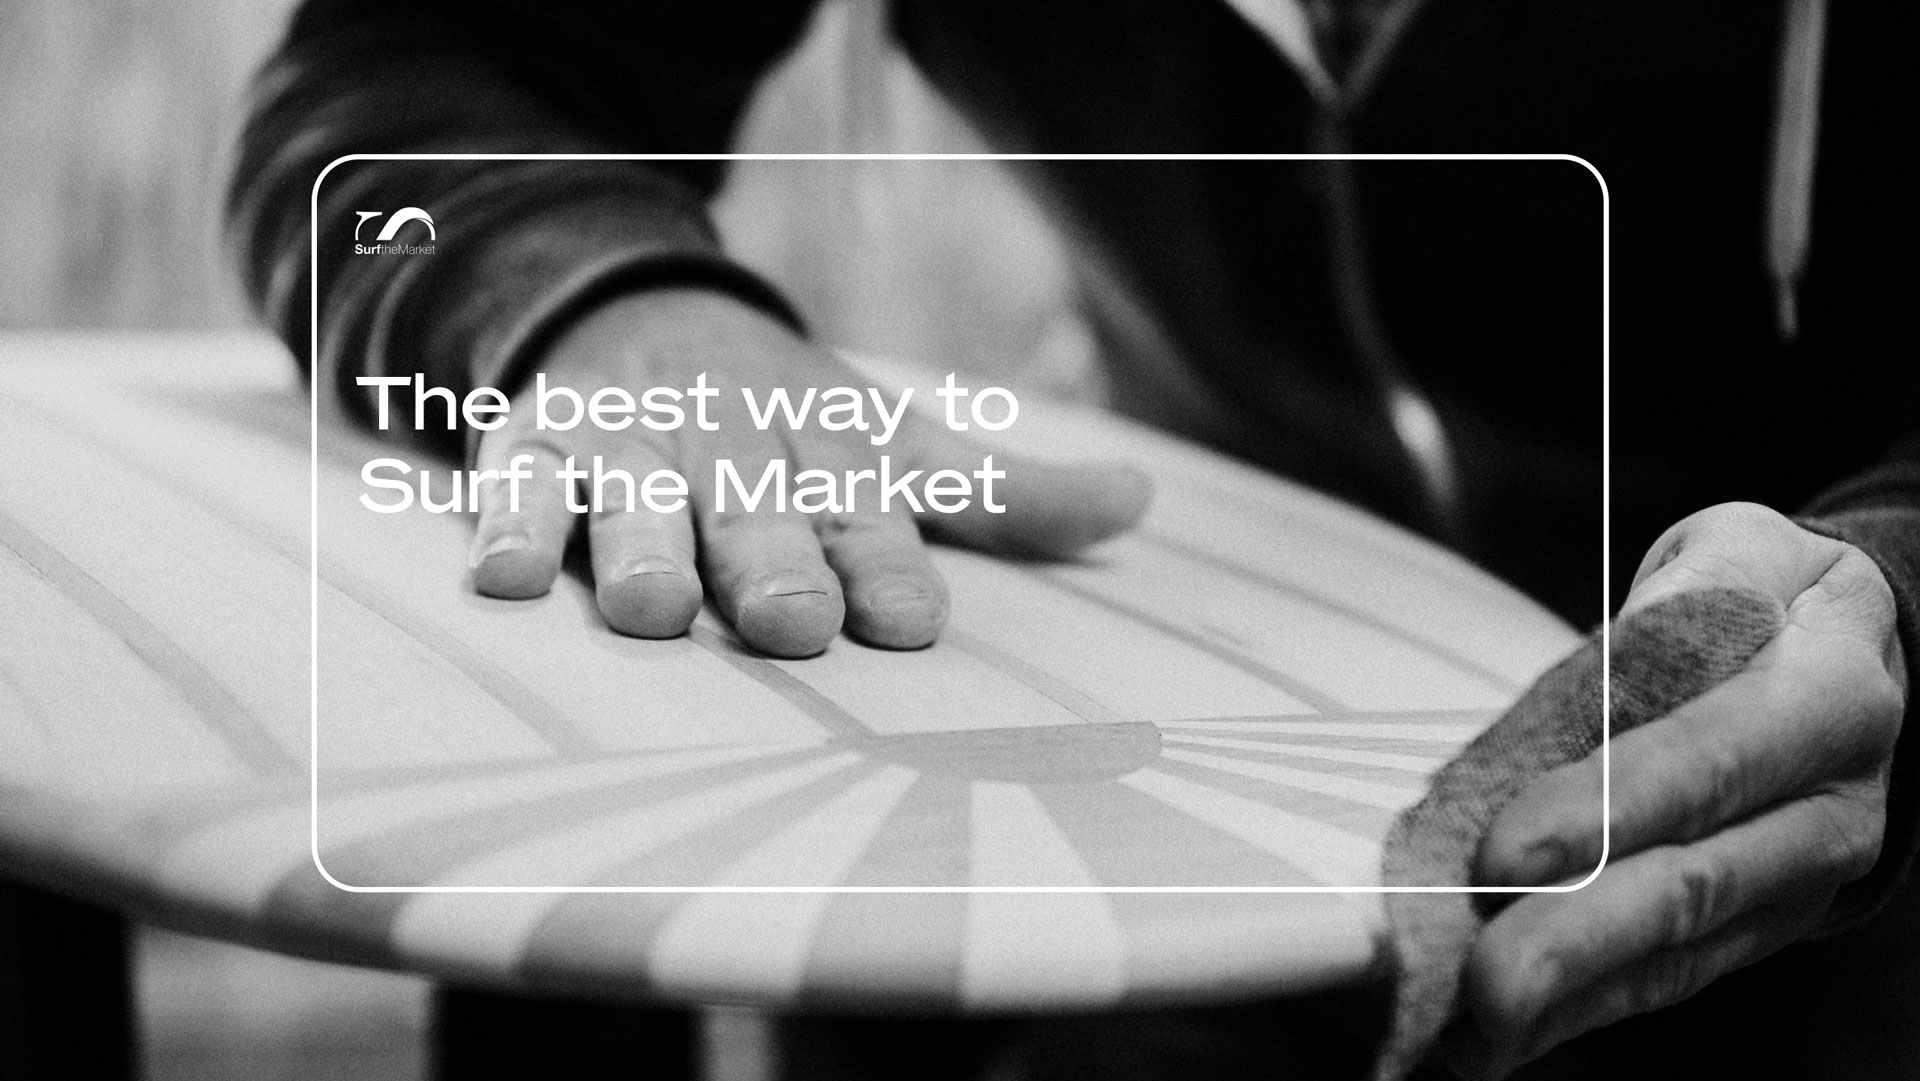 The best way to Surf the Market